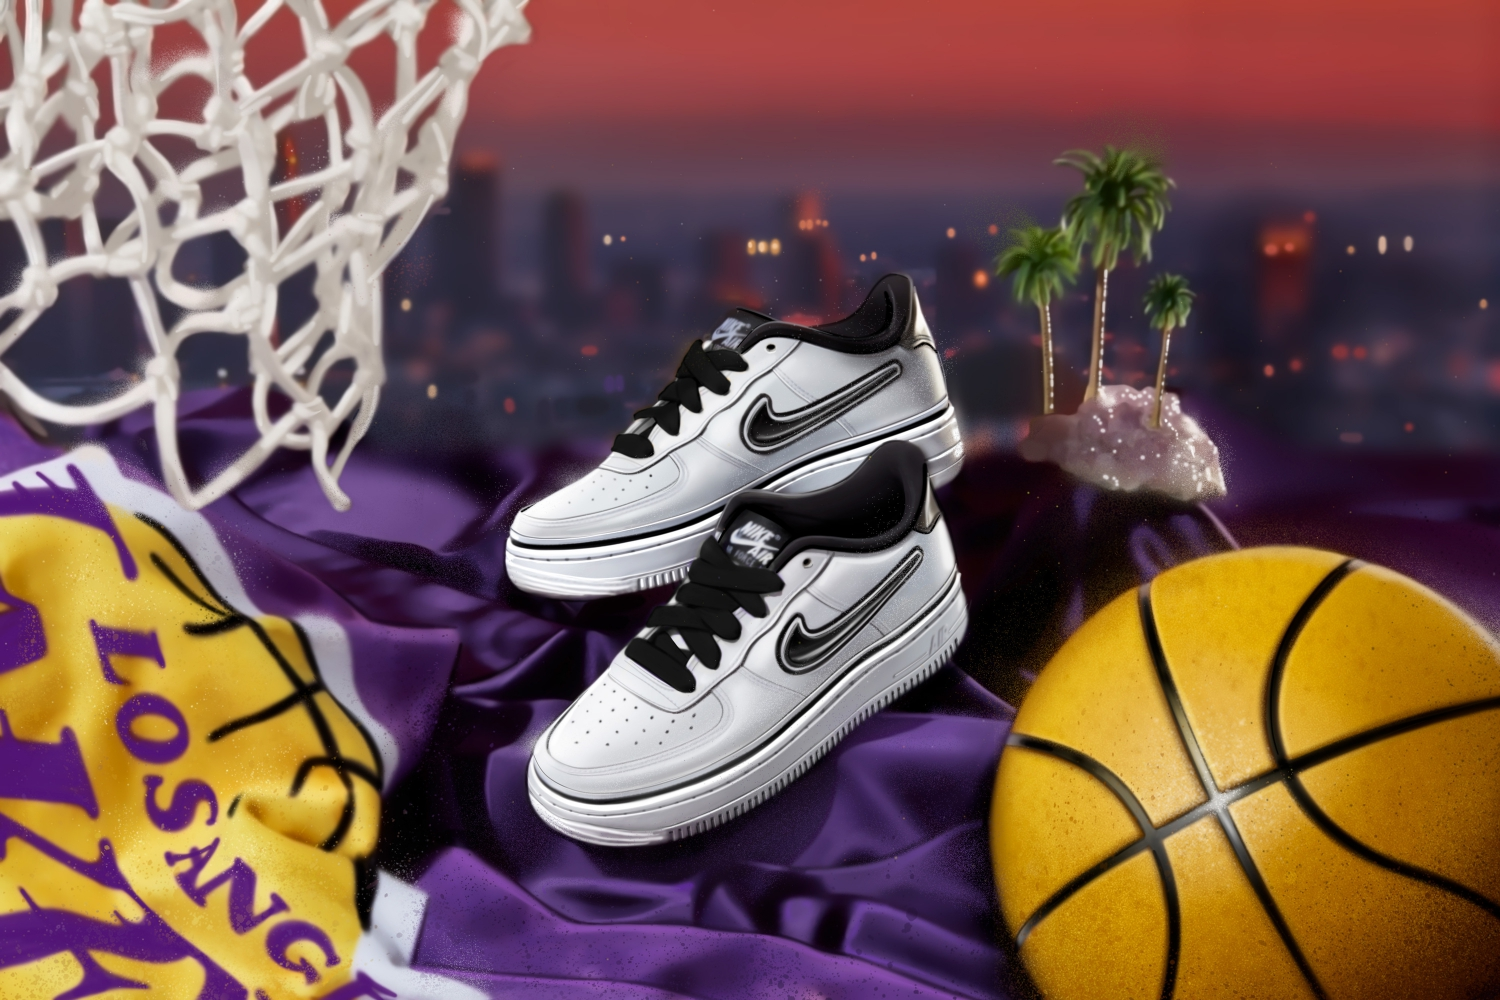 NSW_YA_AF1_NBA_Lakers_Product_BlackLaces